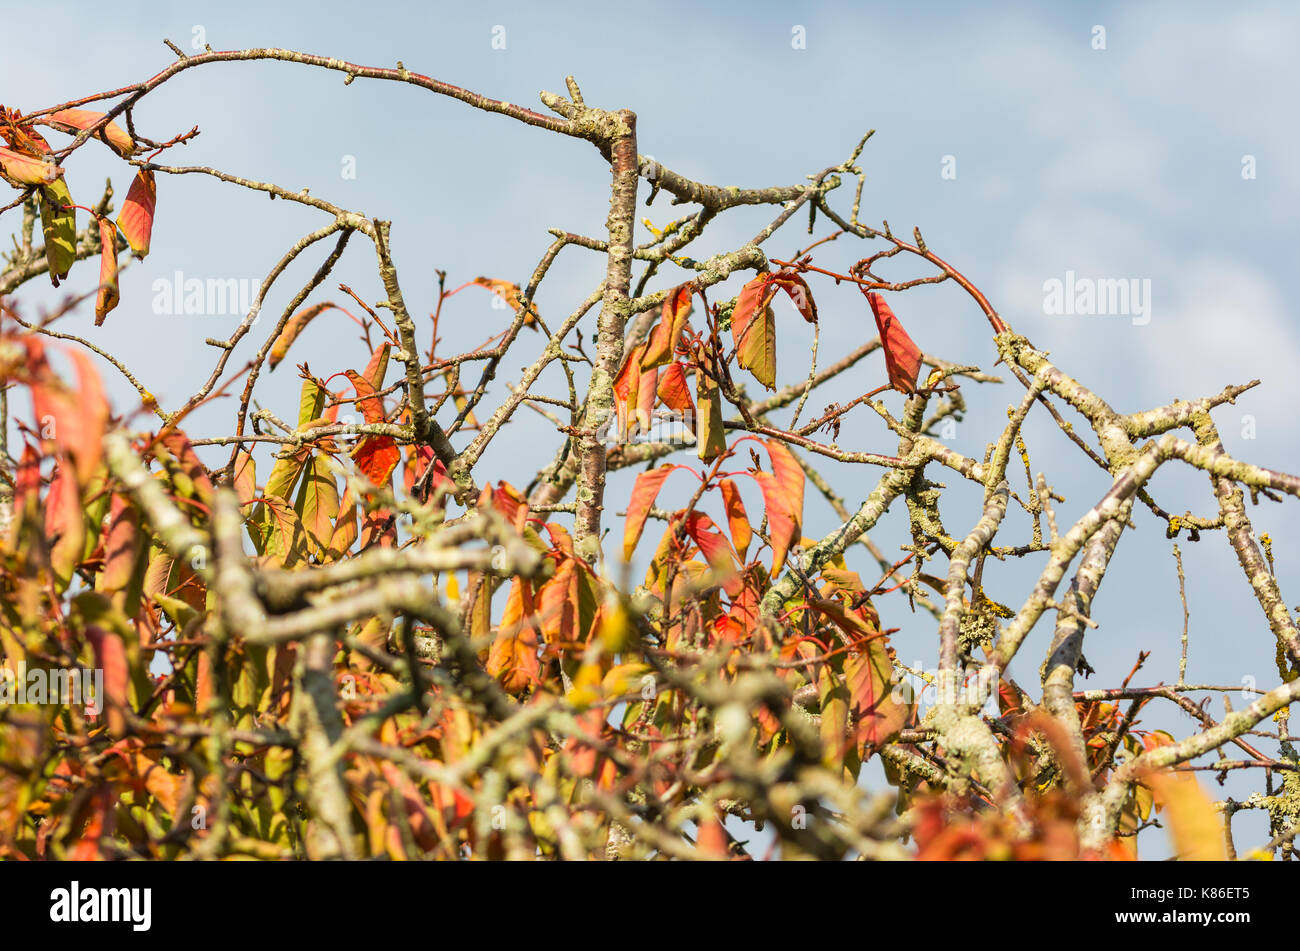 Colourful leaves on a tree as leaves start to die at the start of Autumn, against grey sky in the UK. - Stock Image